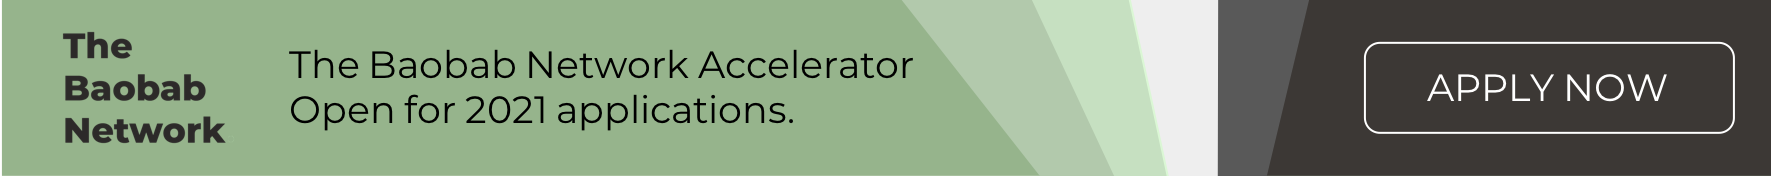 The Baobab Network Accelerator Applications Banner